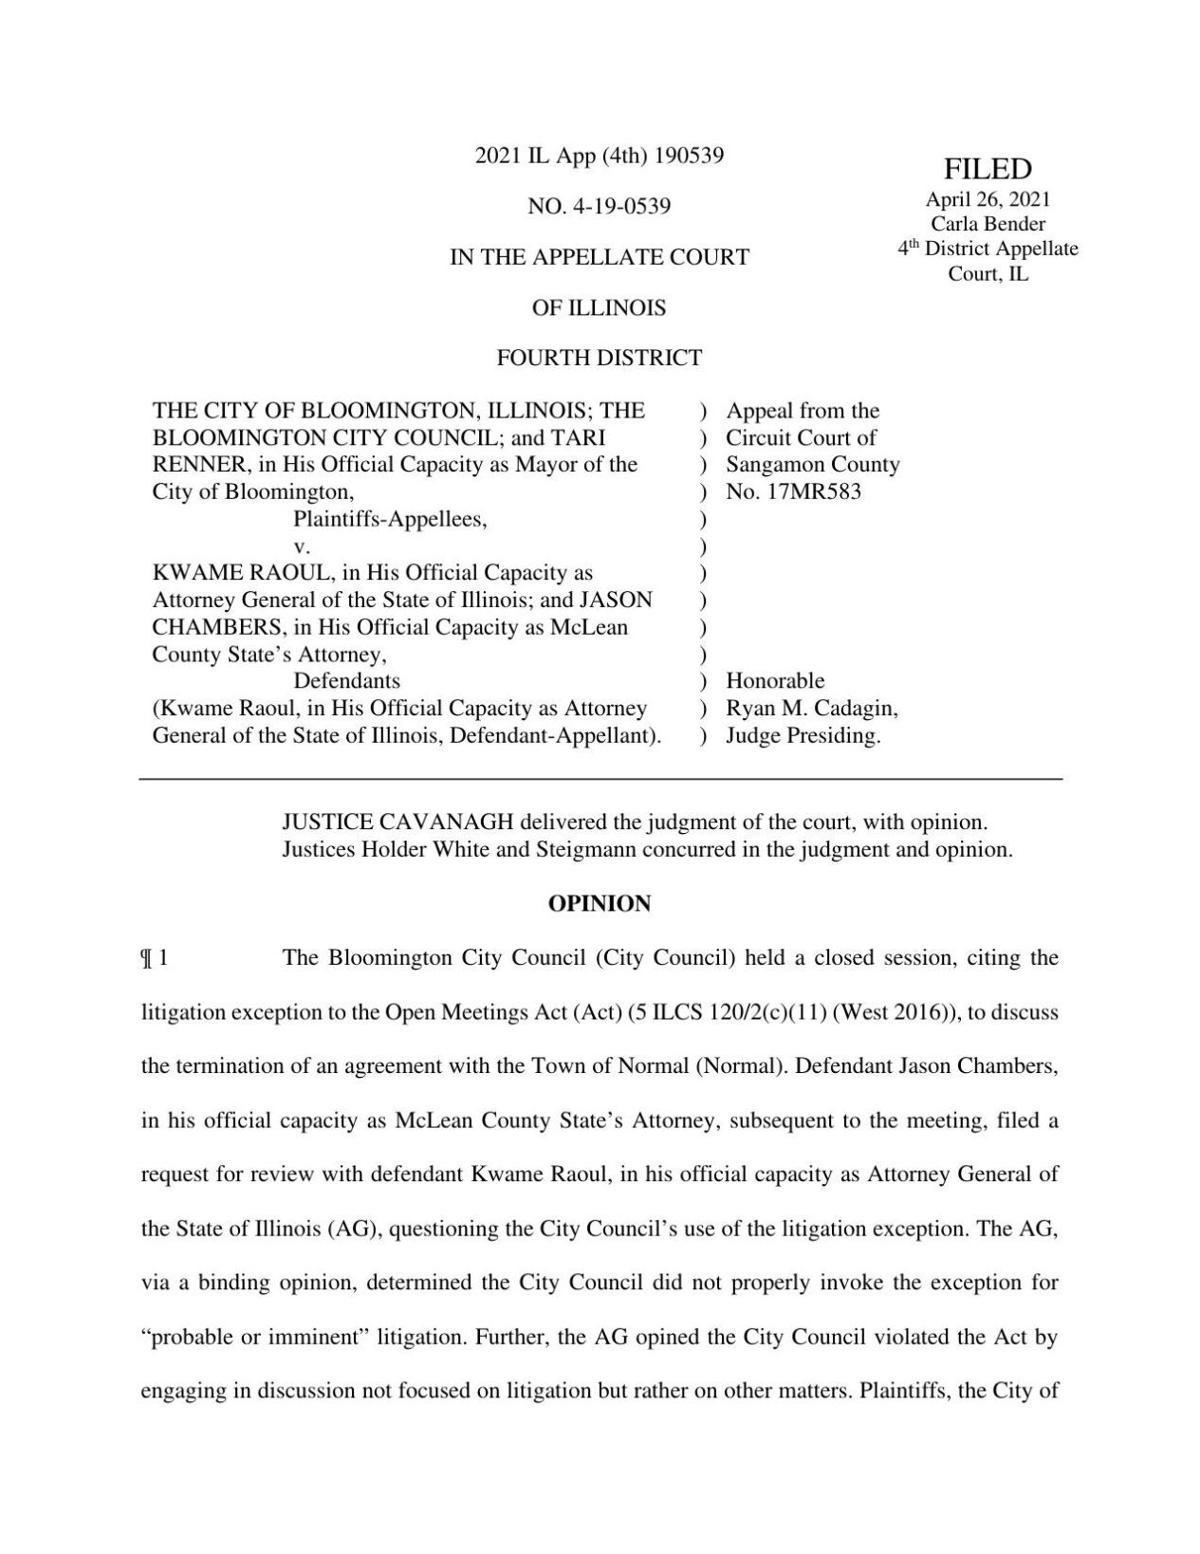 Fourth Appellate District Court ruling from April 26, 2021